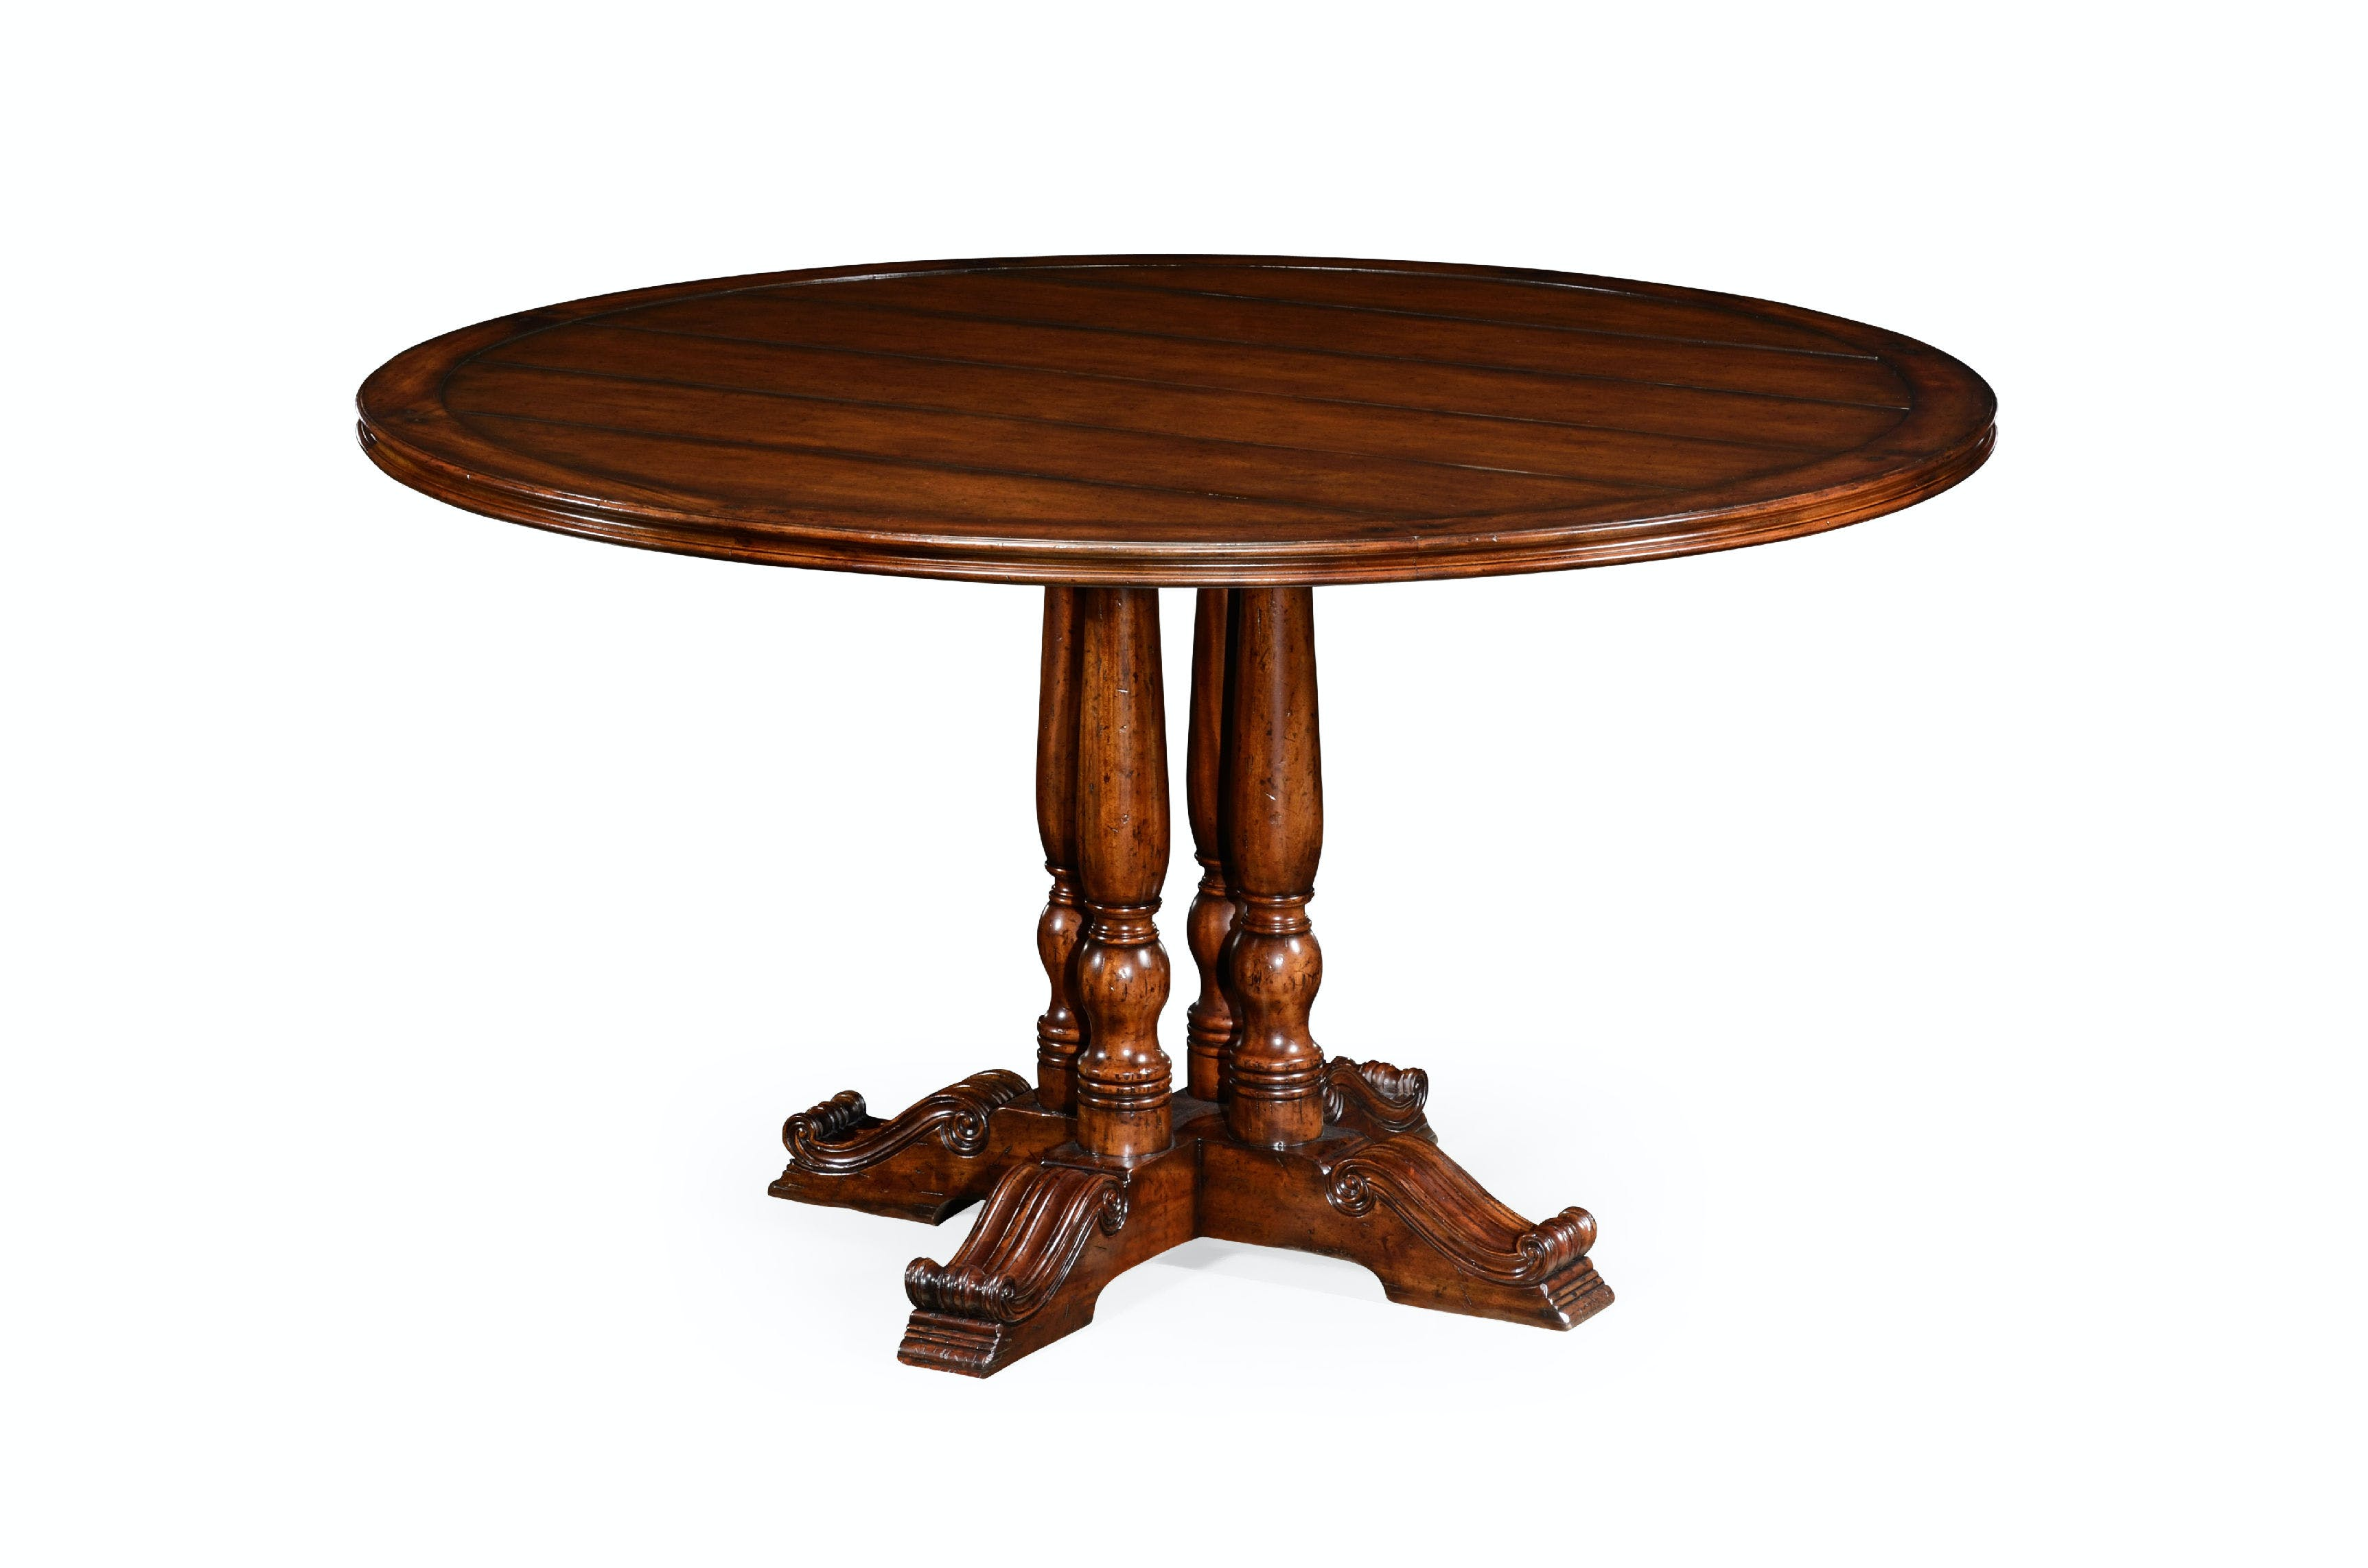 Picture of: Jonathan Charles Dining Room 54 French Round Country Dining Table 492238 54d Gorman S Metro